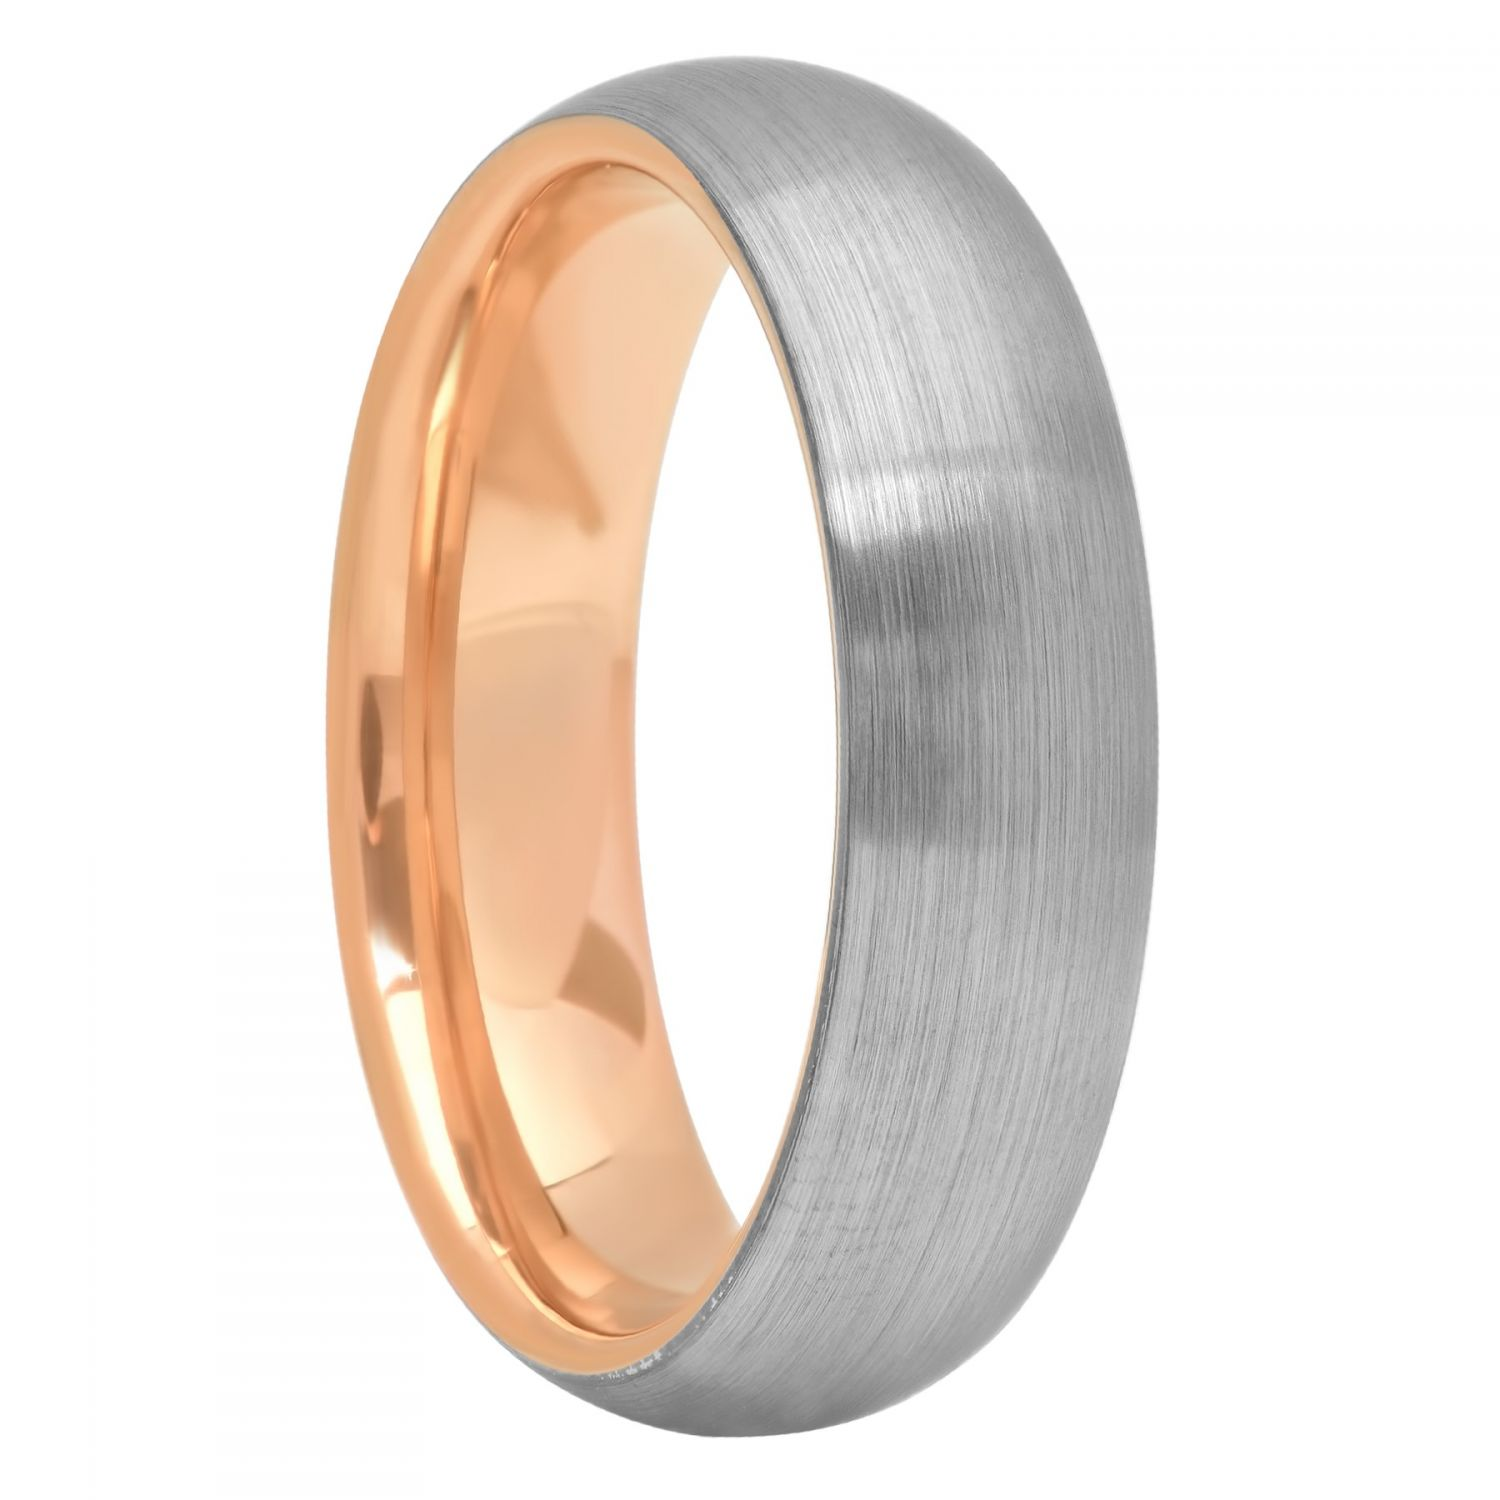 Tantalum Matte Gunmetal And Rose Inside Band, 7mm